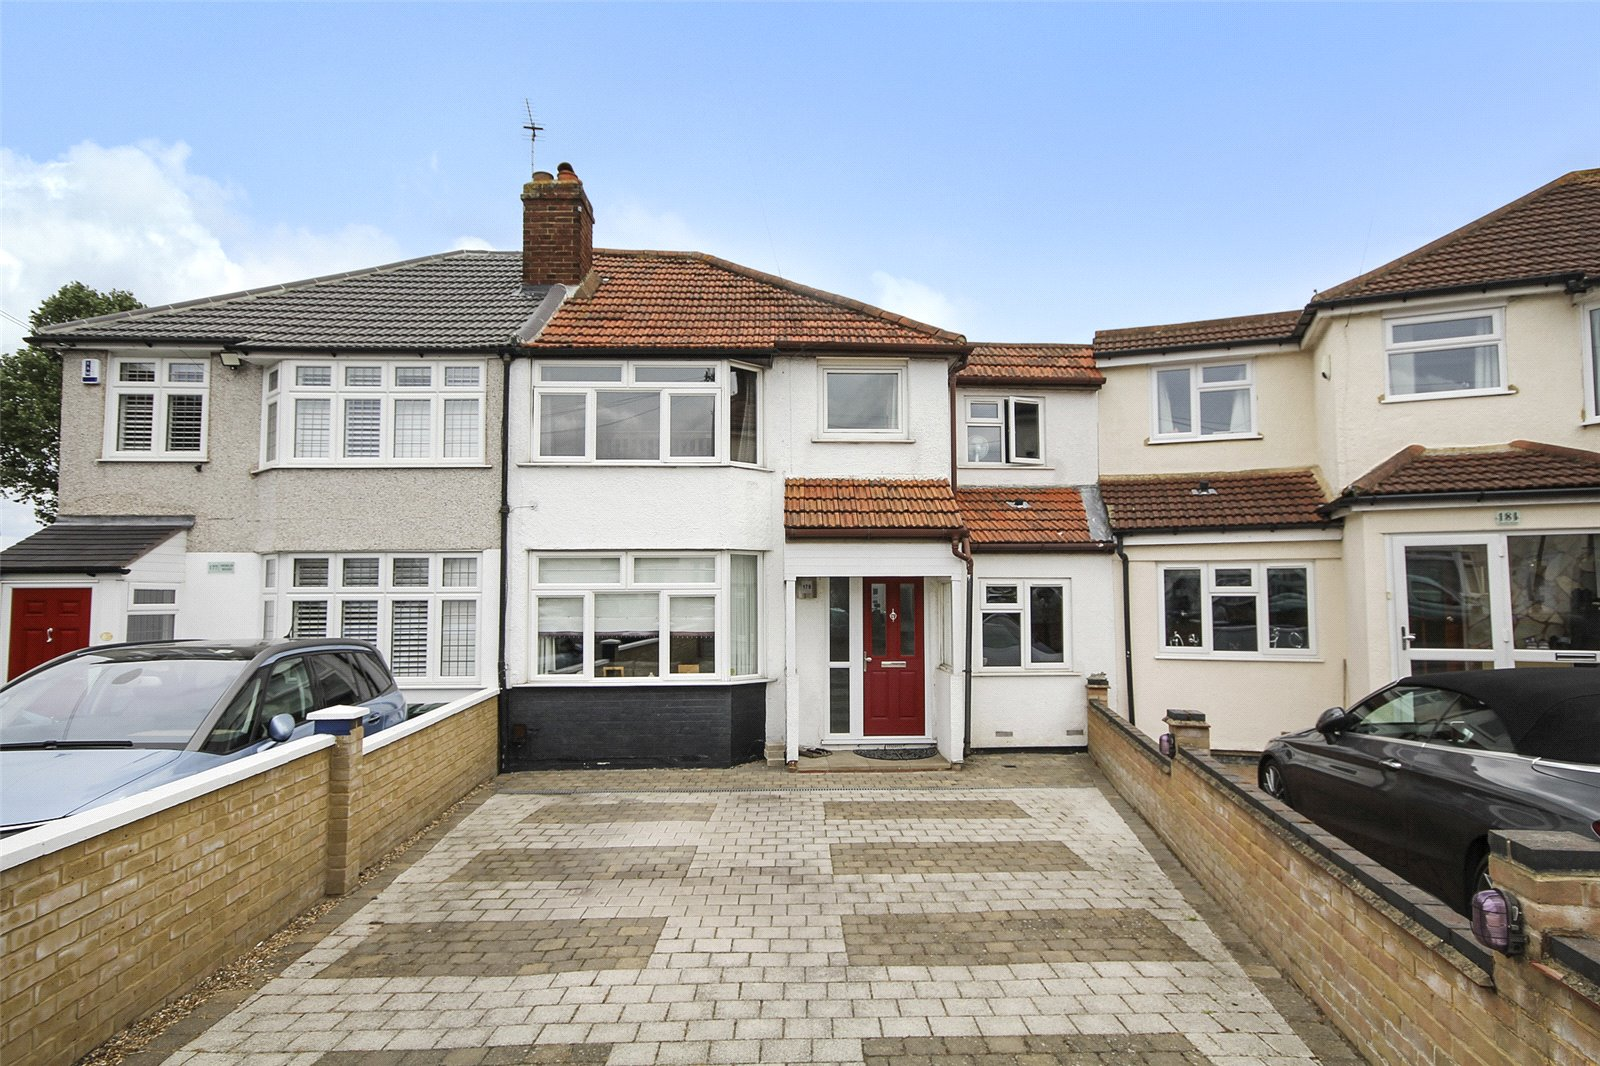 Merlin Road, South Welling, Kent, DA16